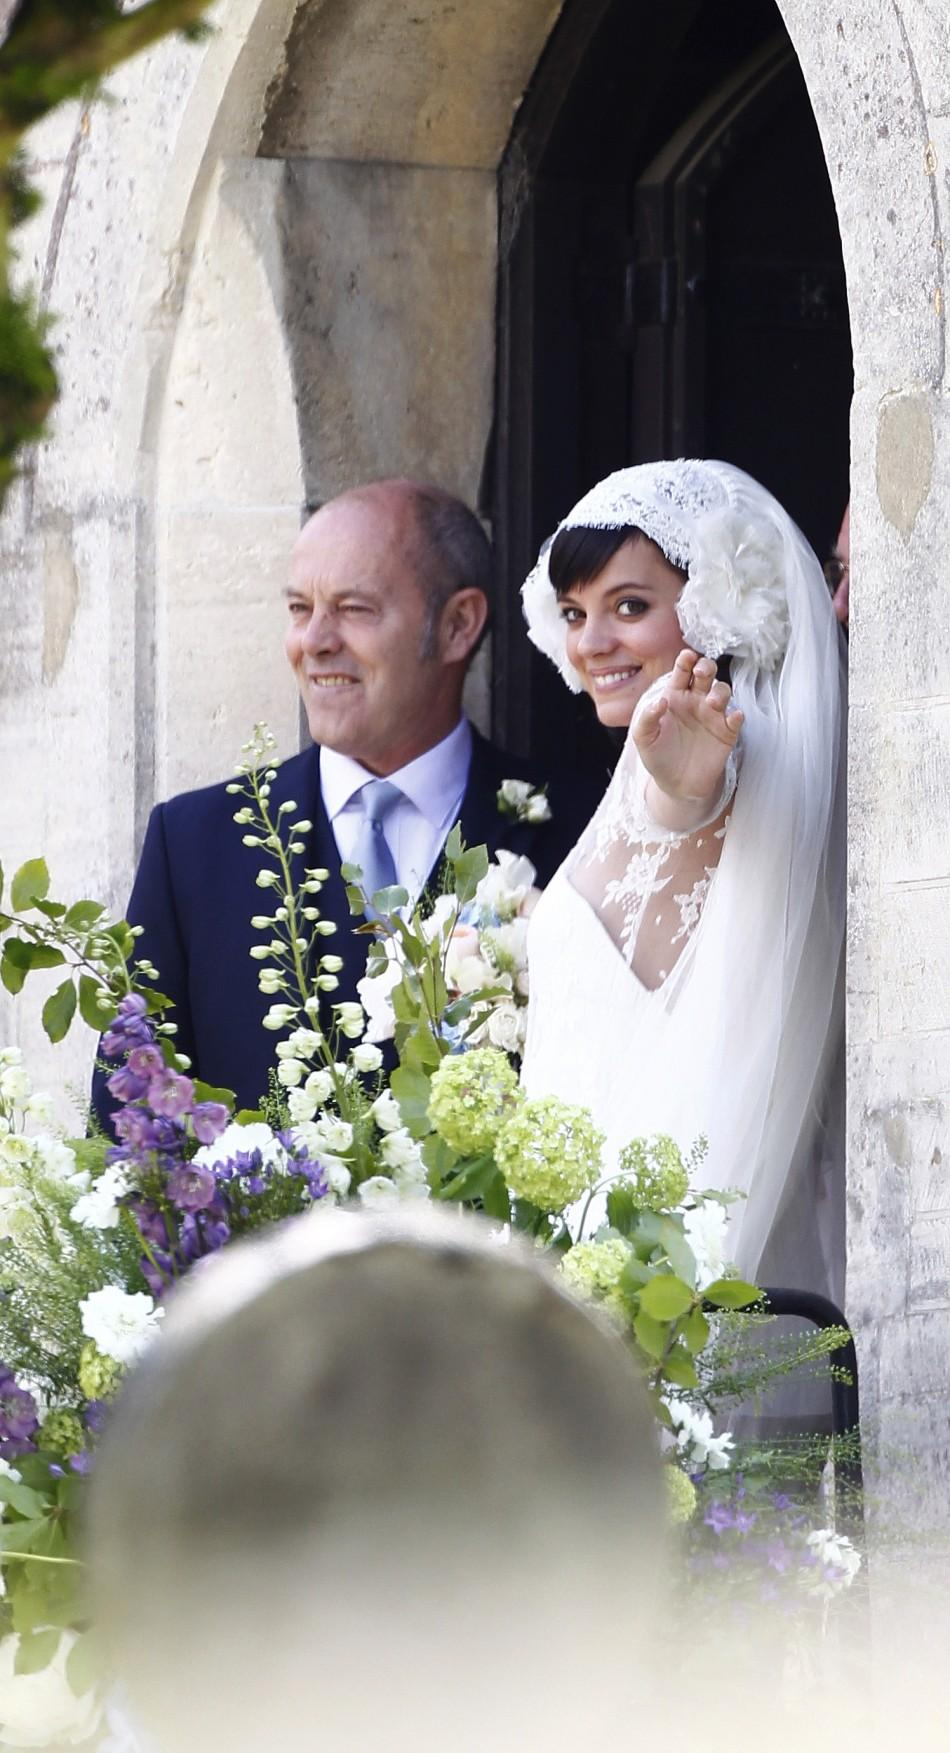 British singer Lily Allen (R) smiles after marrying Sam Cooper as the couple leaves St James the Great Church in Cranham, Goucestershire, western England, June 11, 2011.